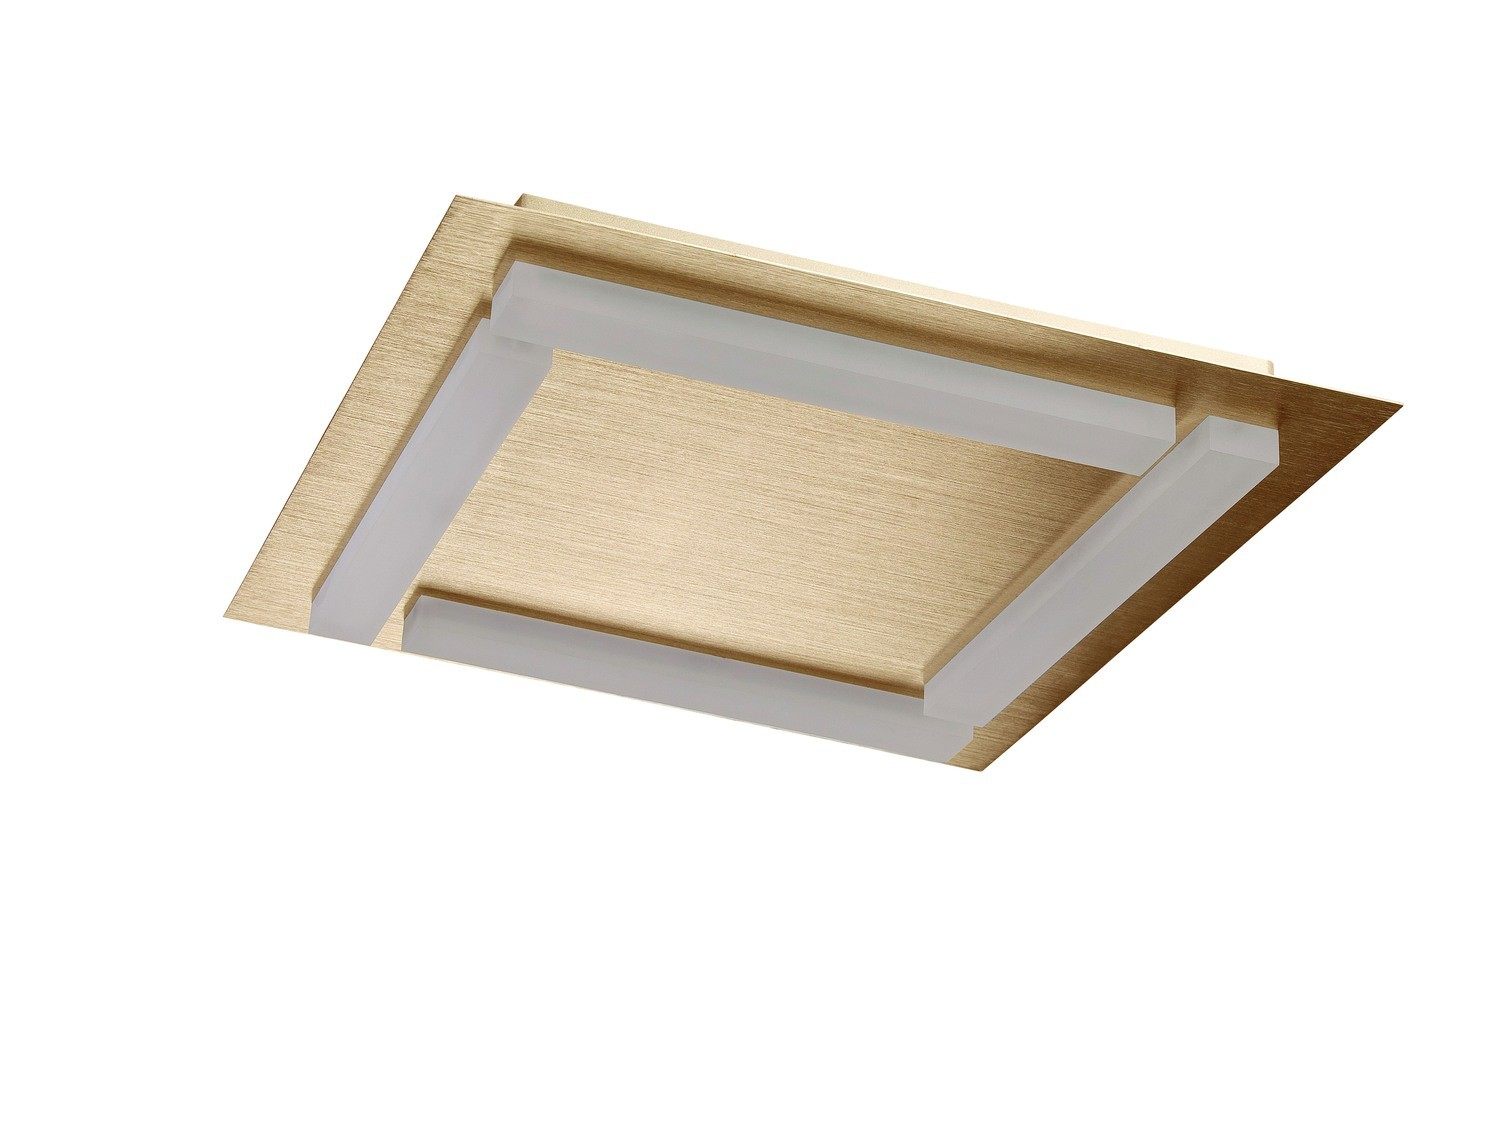 Verona Ceiling 4 Light 20W LED 3000K, 1800lm, Satin Gold/Frosted Acrylic, 3yrs Warranty